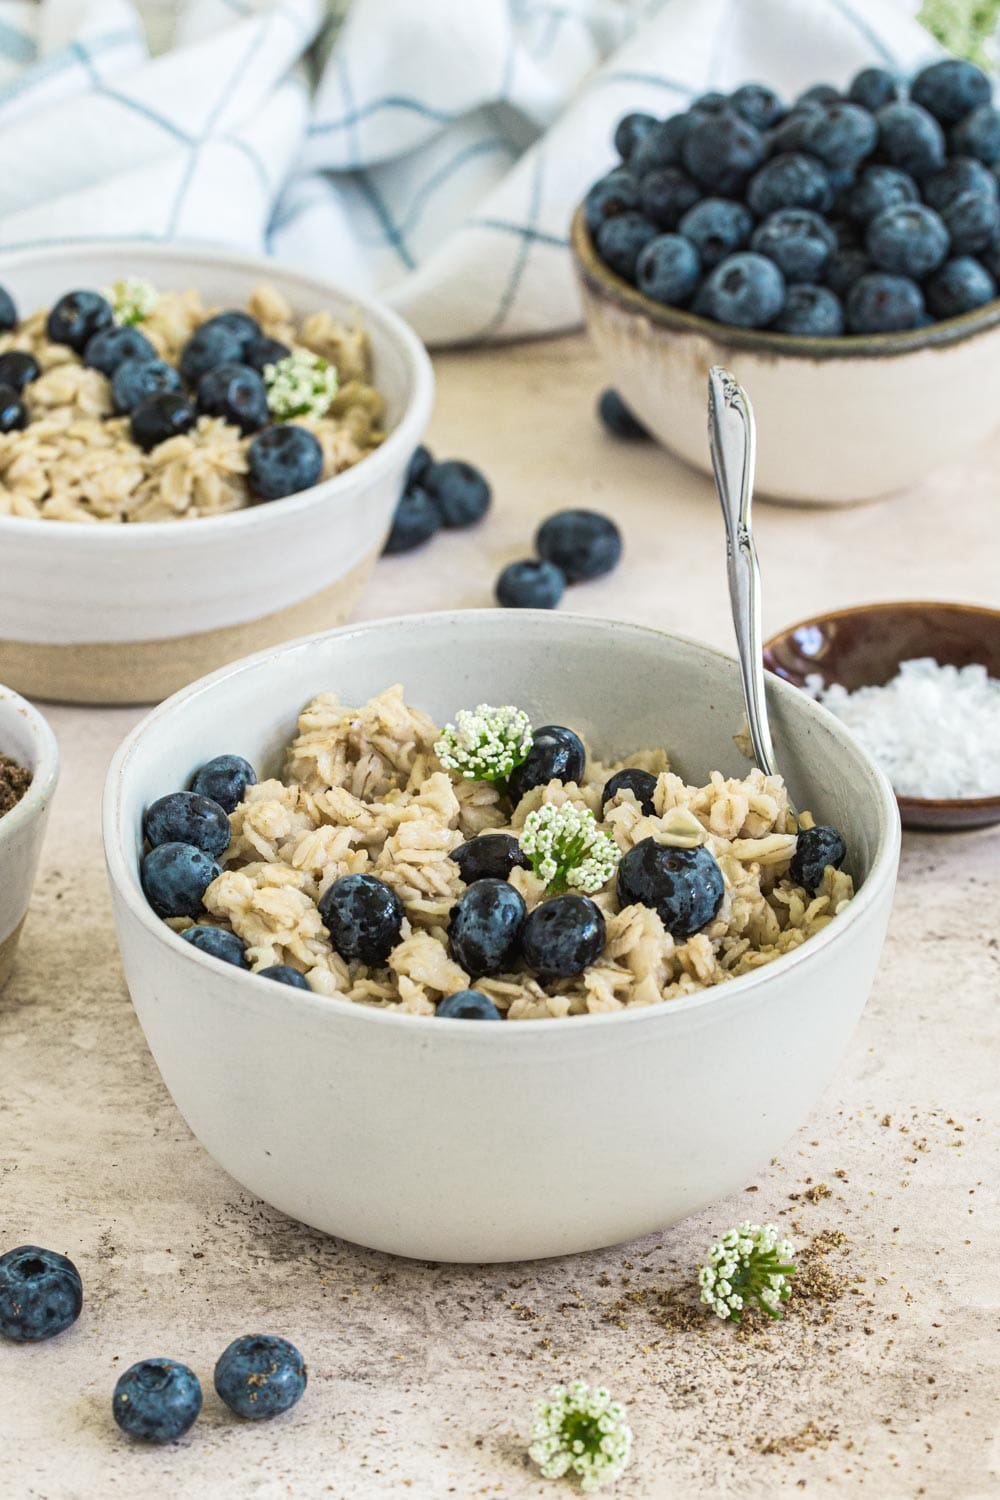 Easy stovetop oatmeal topped with blueberries in white bowl with silver spoon.